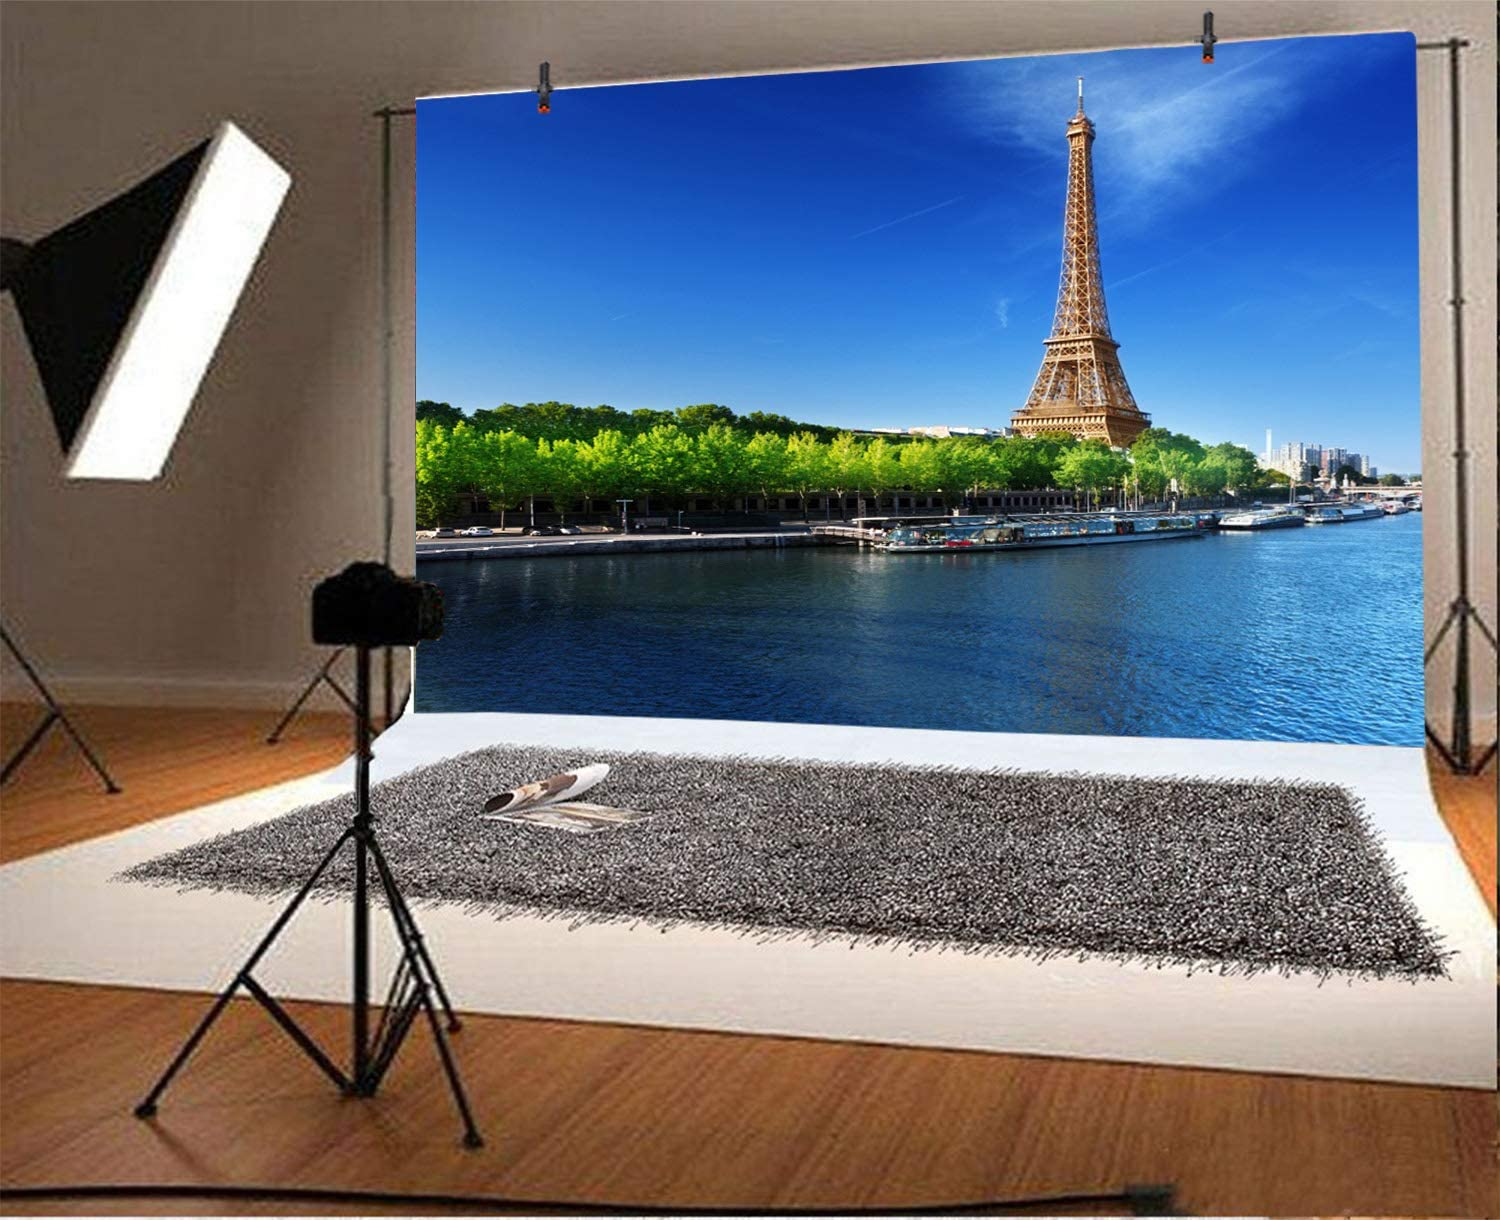 CdHBH 10x8ft Eiffel Tower Backdrop Famous Scenic Spots in Paris Photography Background Blue Sky Indoor Decors Wallpaper Holiday Party Backdrop Photo Studio